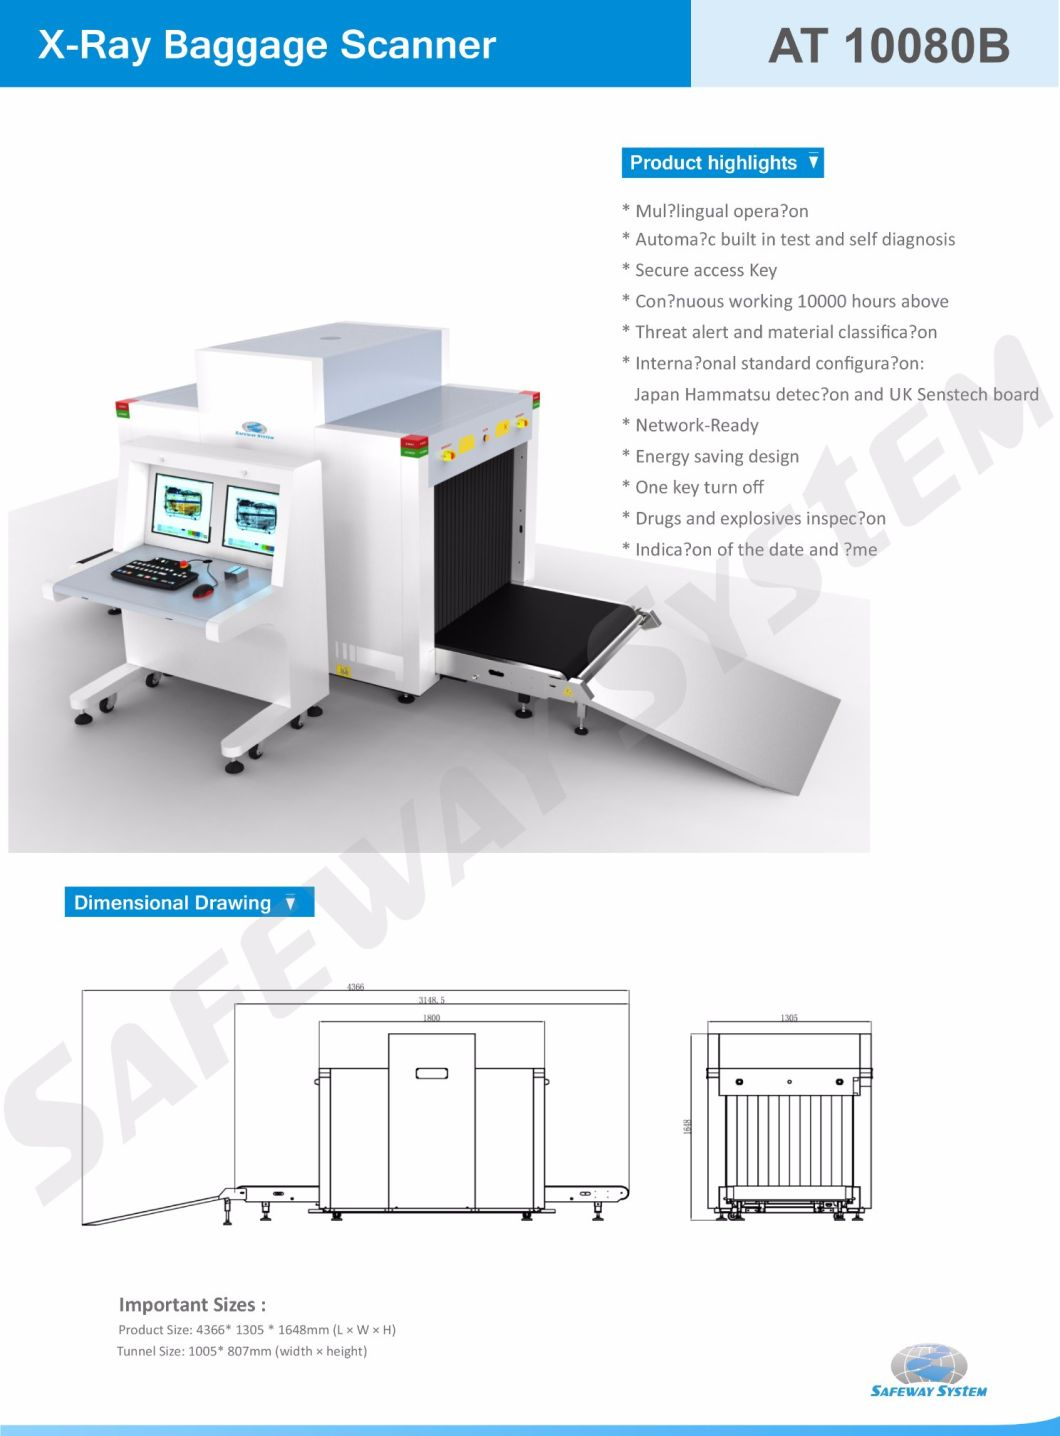 X-ray Machine X-ray Parcels & Baggage Scanner - Biggest Factory